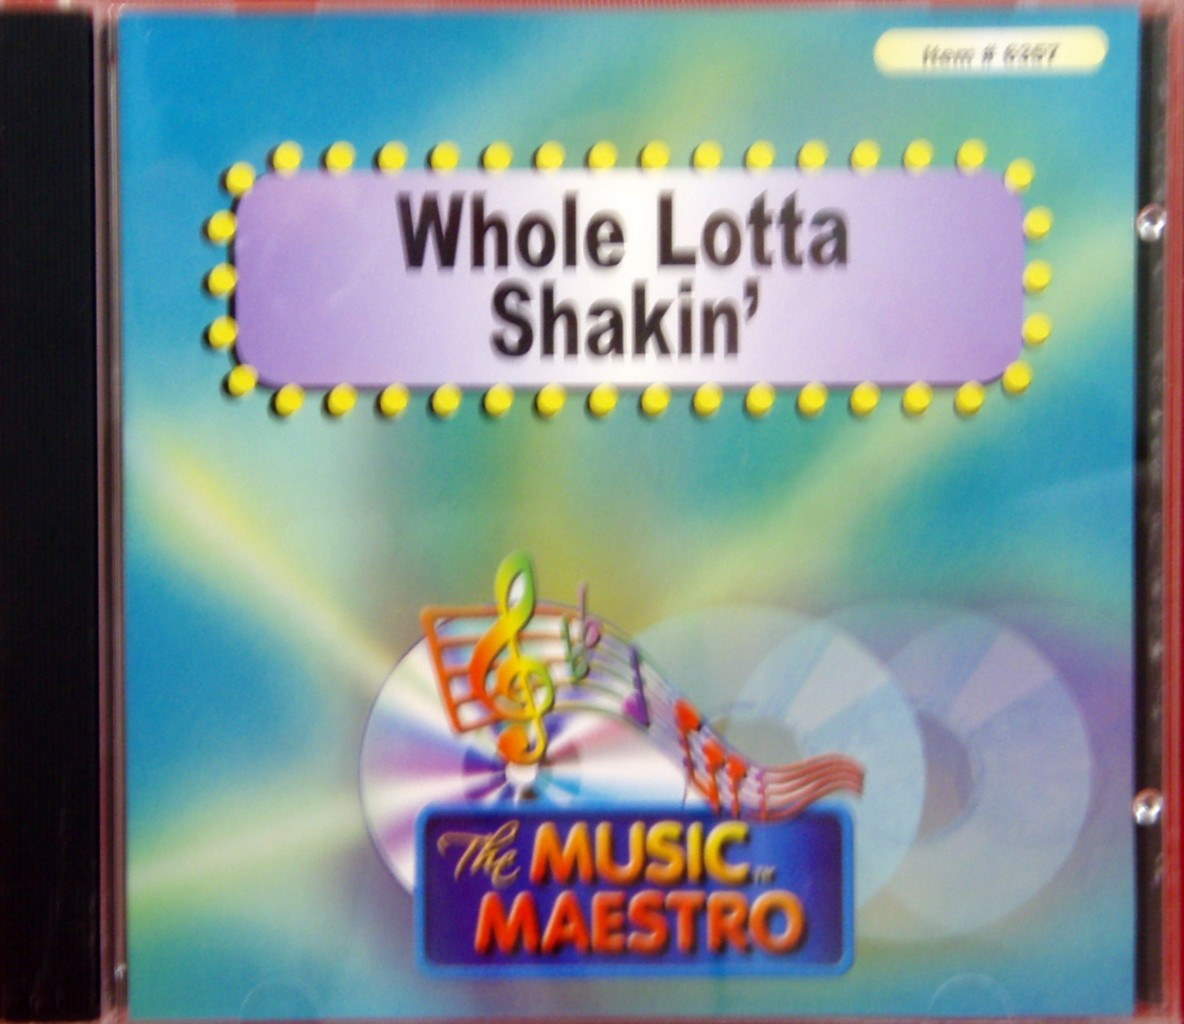 ELVIS-PRESLEY-WHOLE-LOTTA-SHAKIN-CD-G-NEW-KARAOKE-CDG